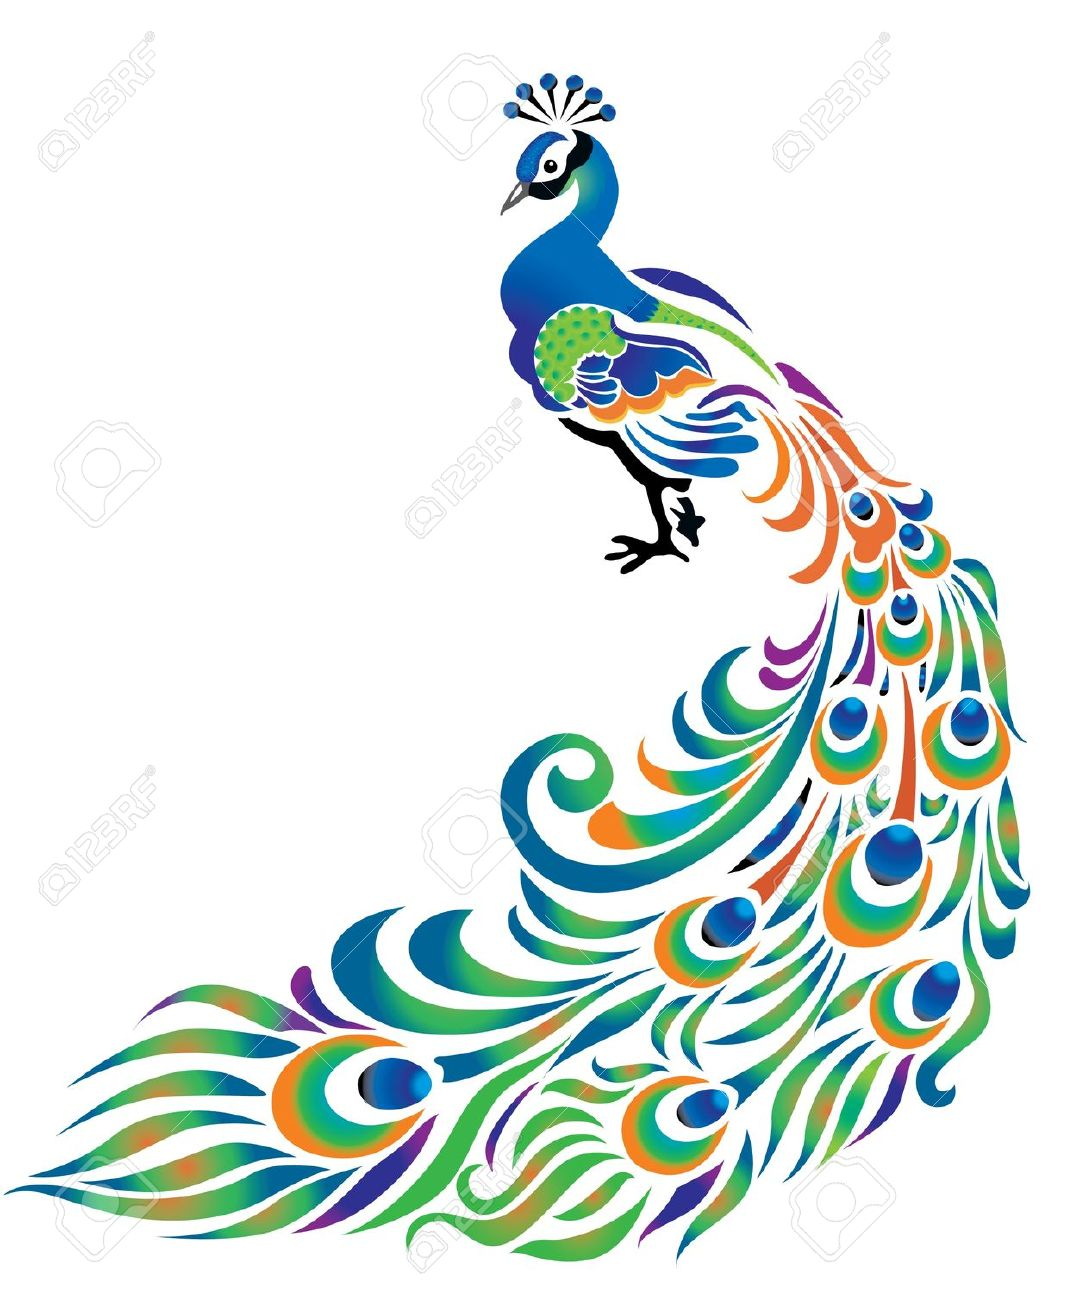 tattoo design clipart at getdrawings com free for personal use rh getdrawings com clip art designs clipart design usa